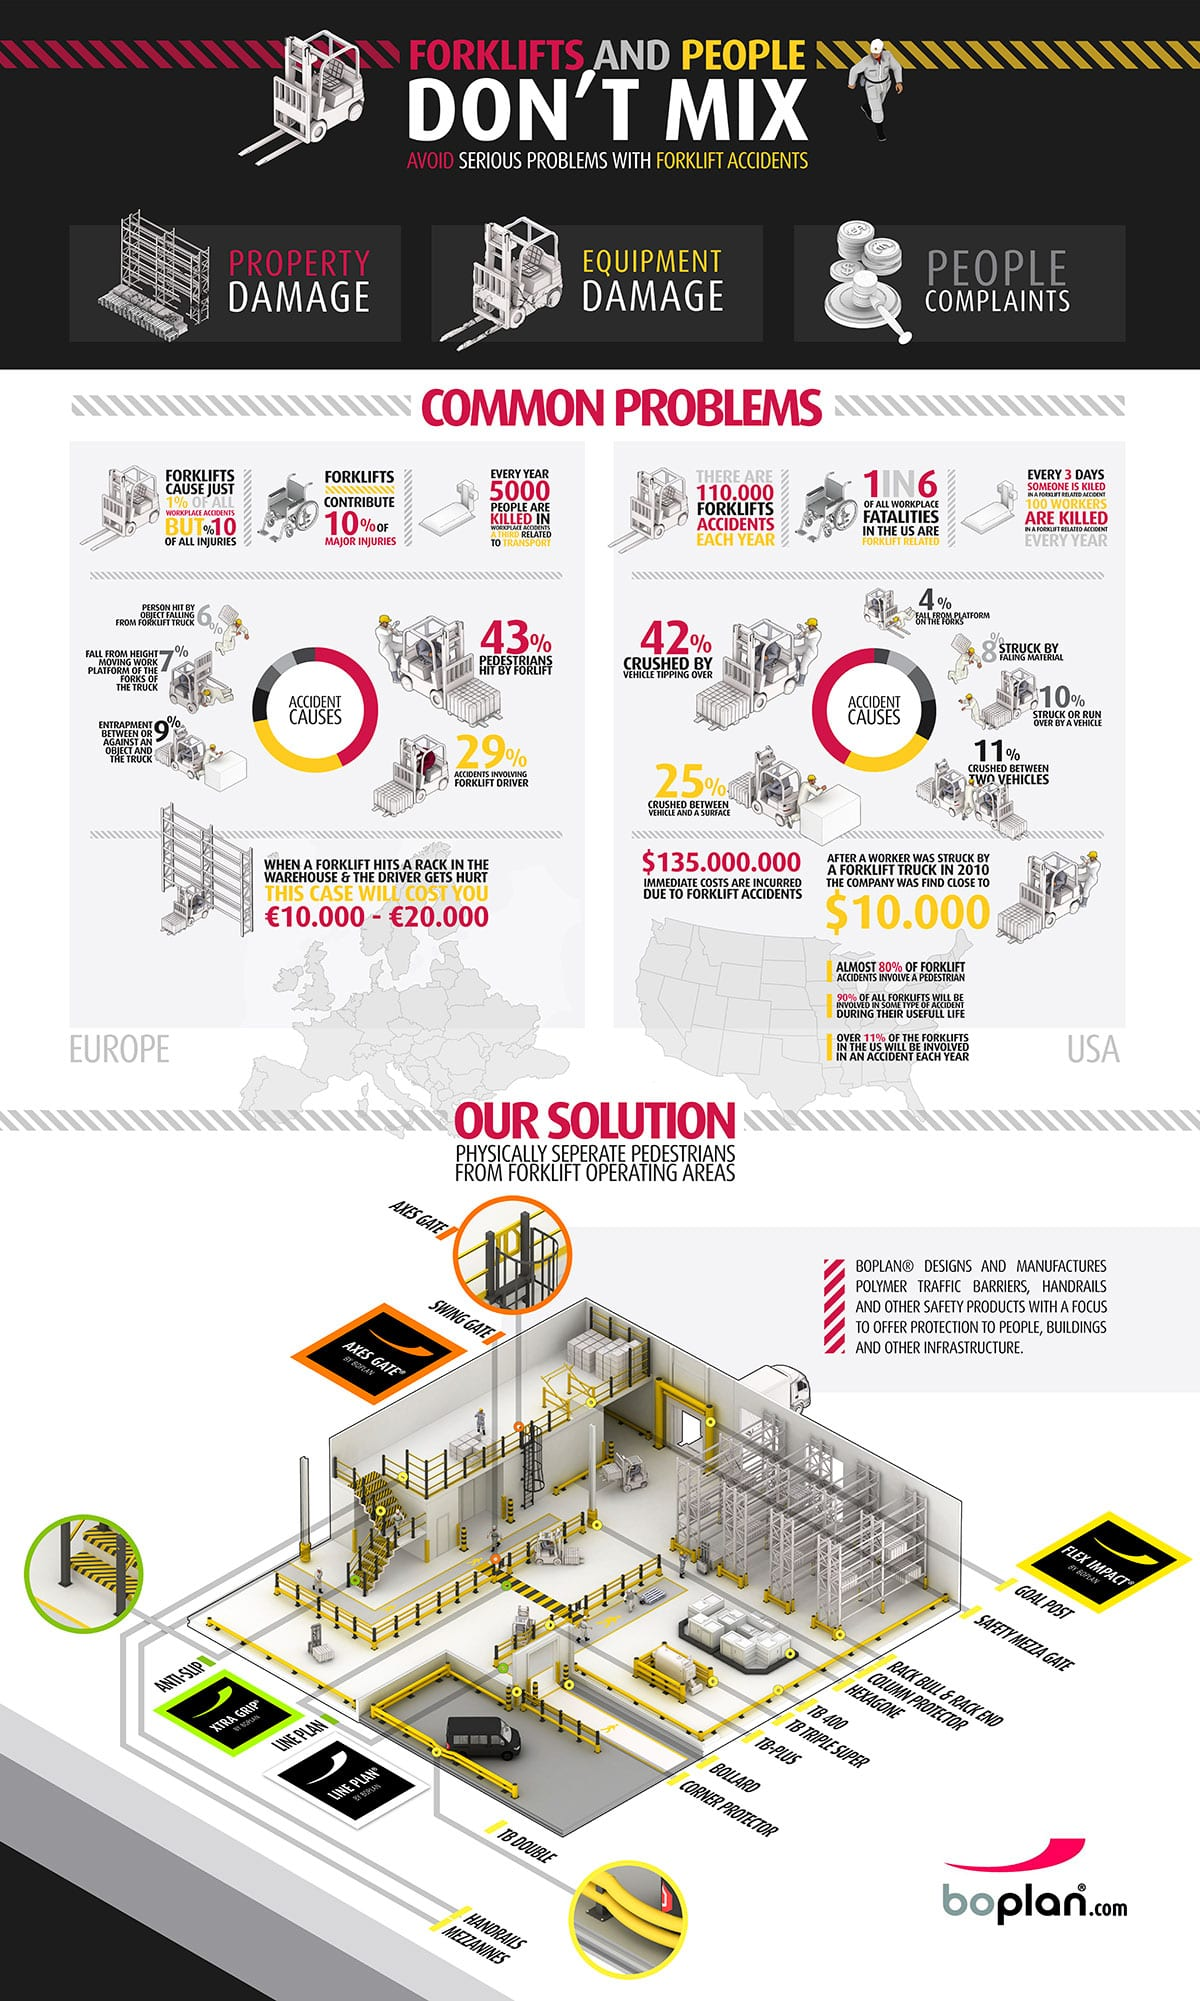 Boplan infographic forklifts and people don't mix